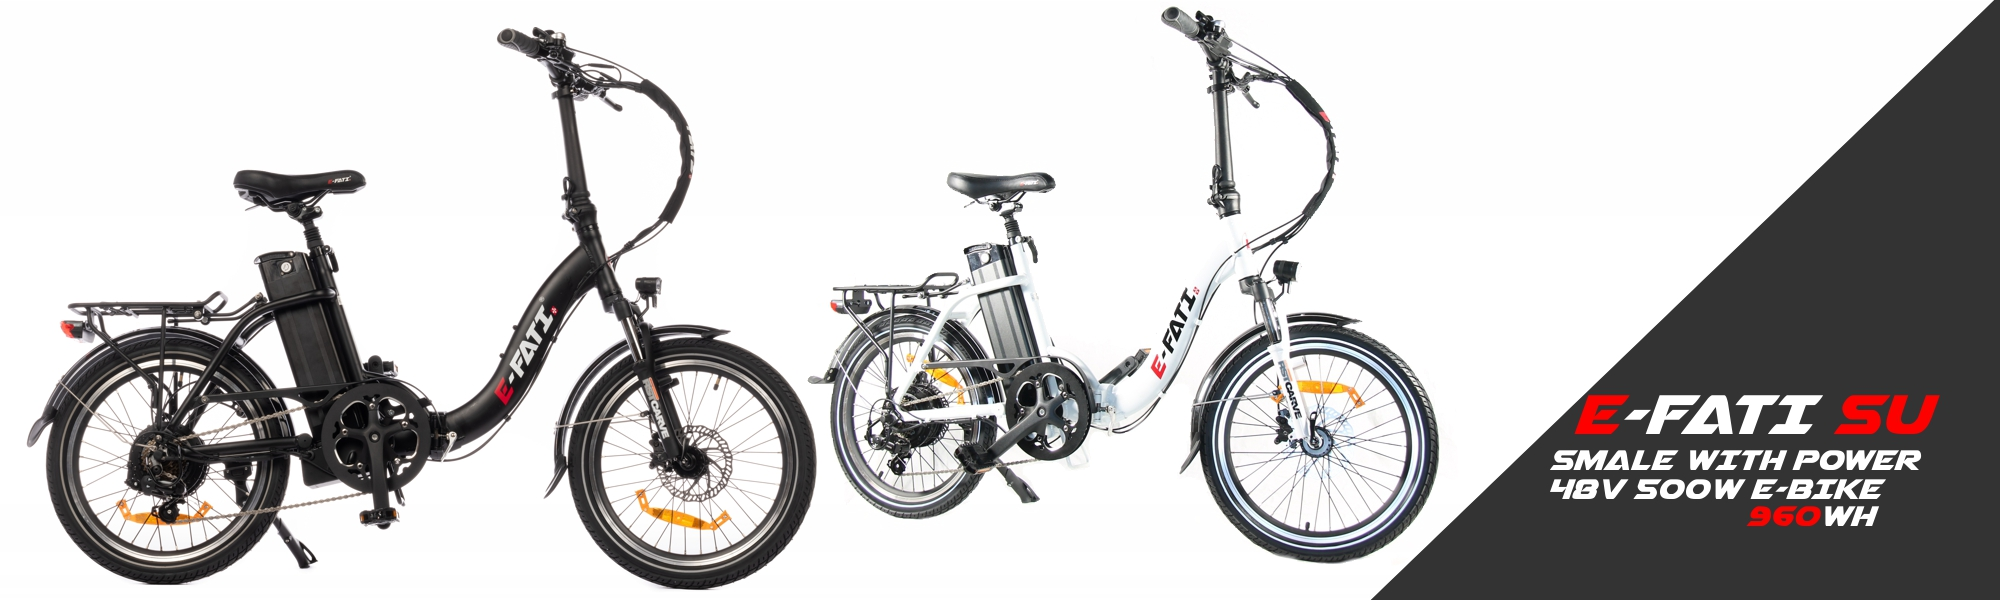 e-fati electric folding bike 20